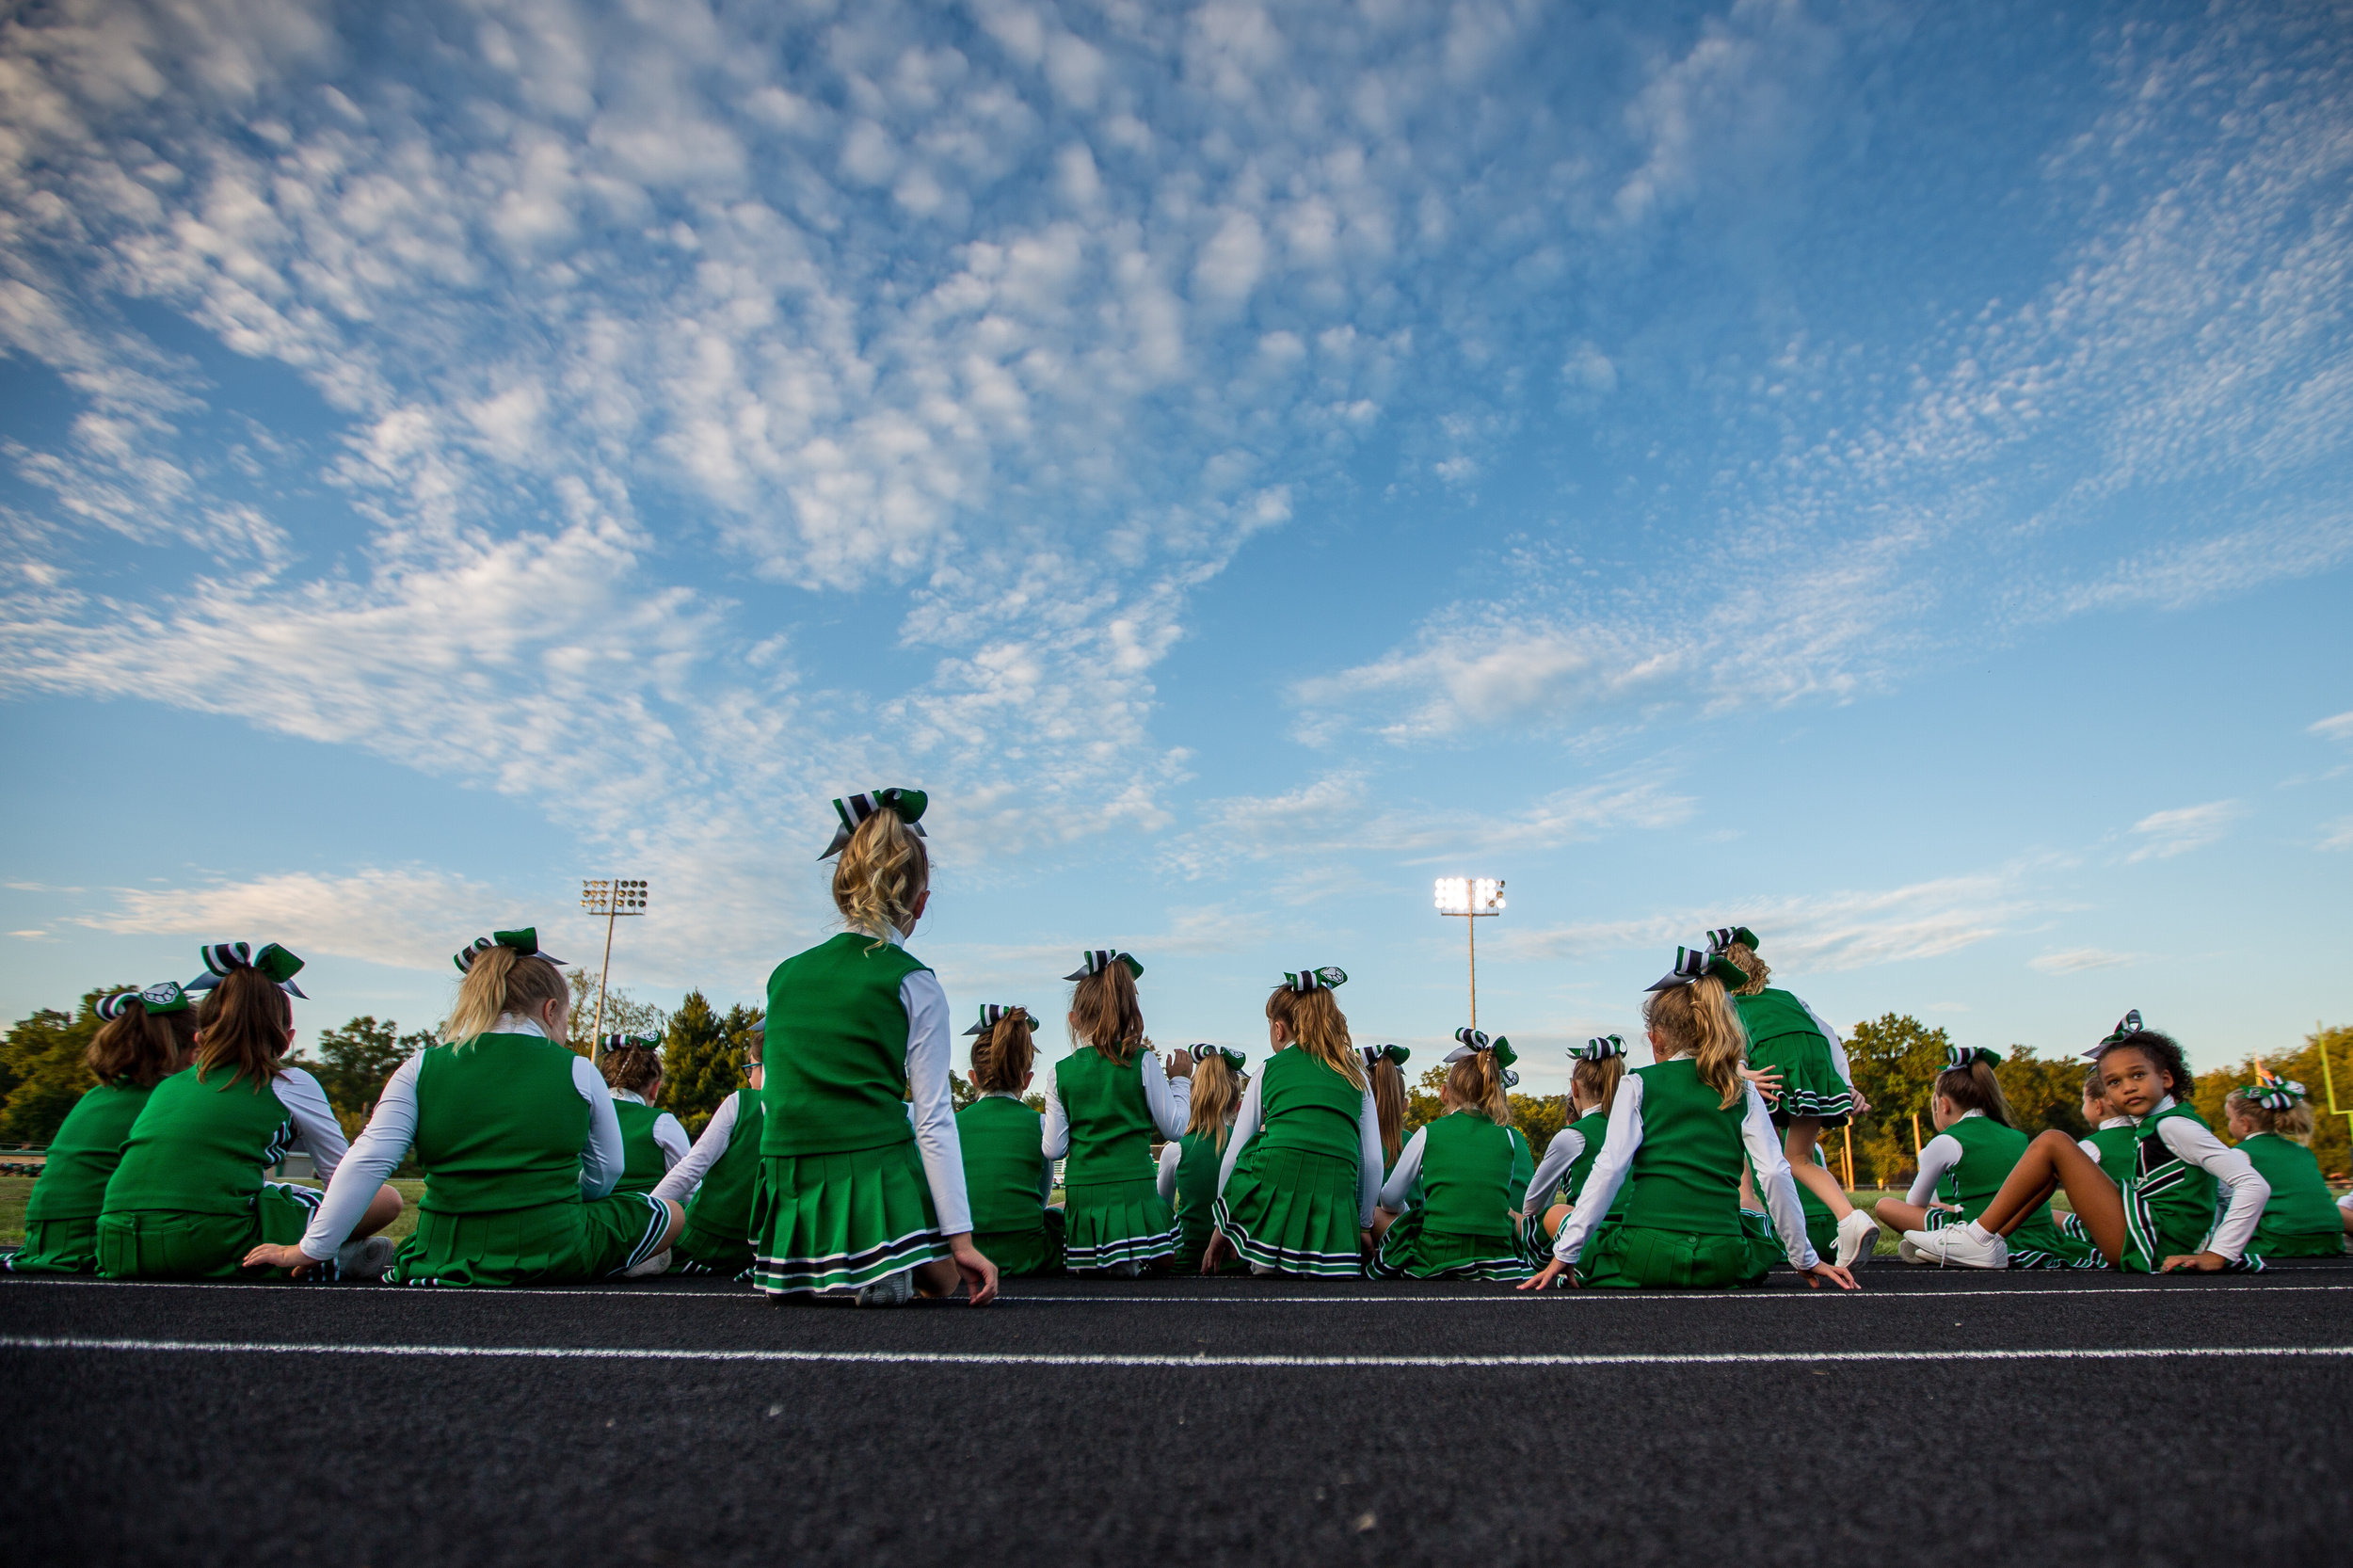 Participants of Twerp Cheer sit on the track while watching other cheerleaders perform at Riverside High School's Meet the Panthers pep rally on Thursday evening.